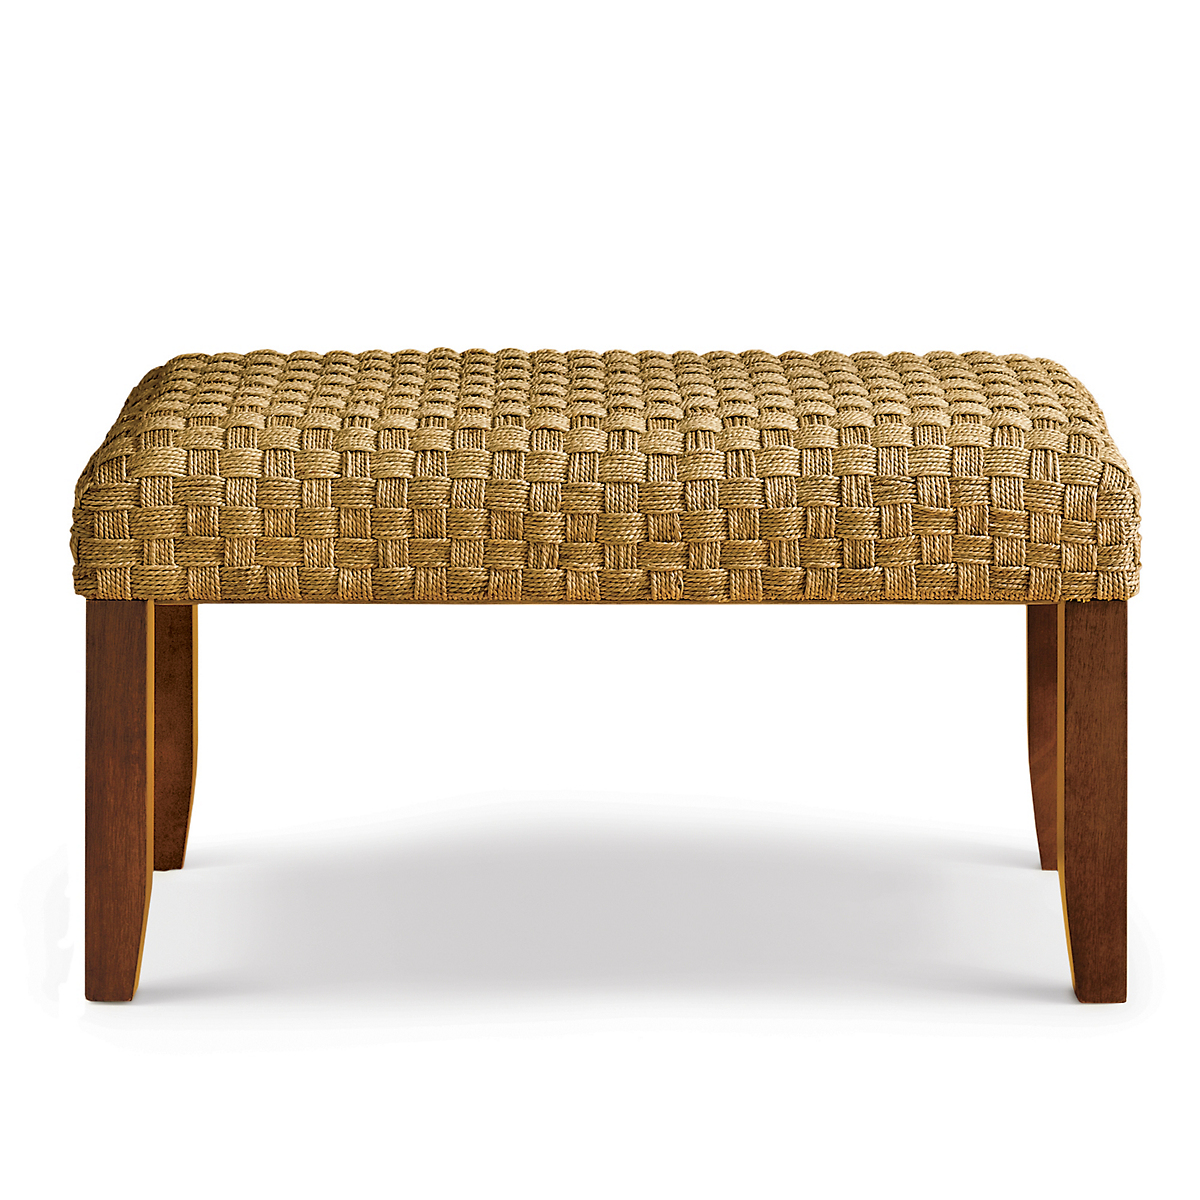 Seagrass Bench - Seagrass Bench Gump's